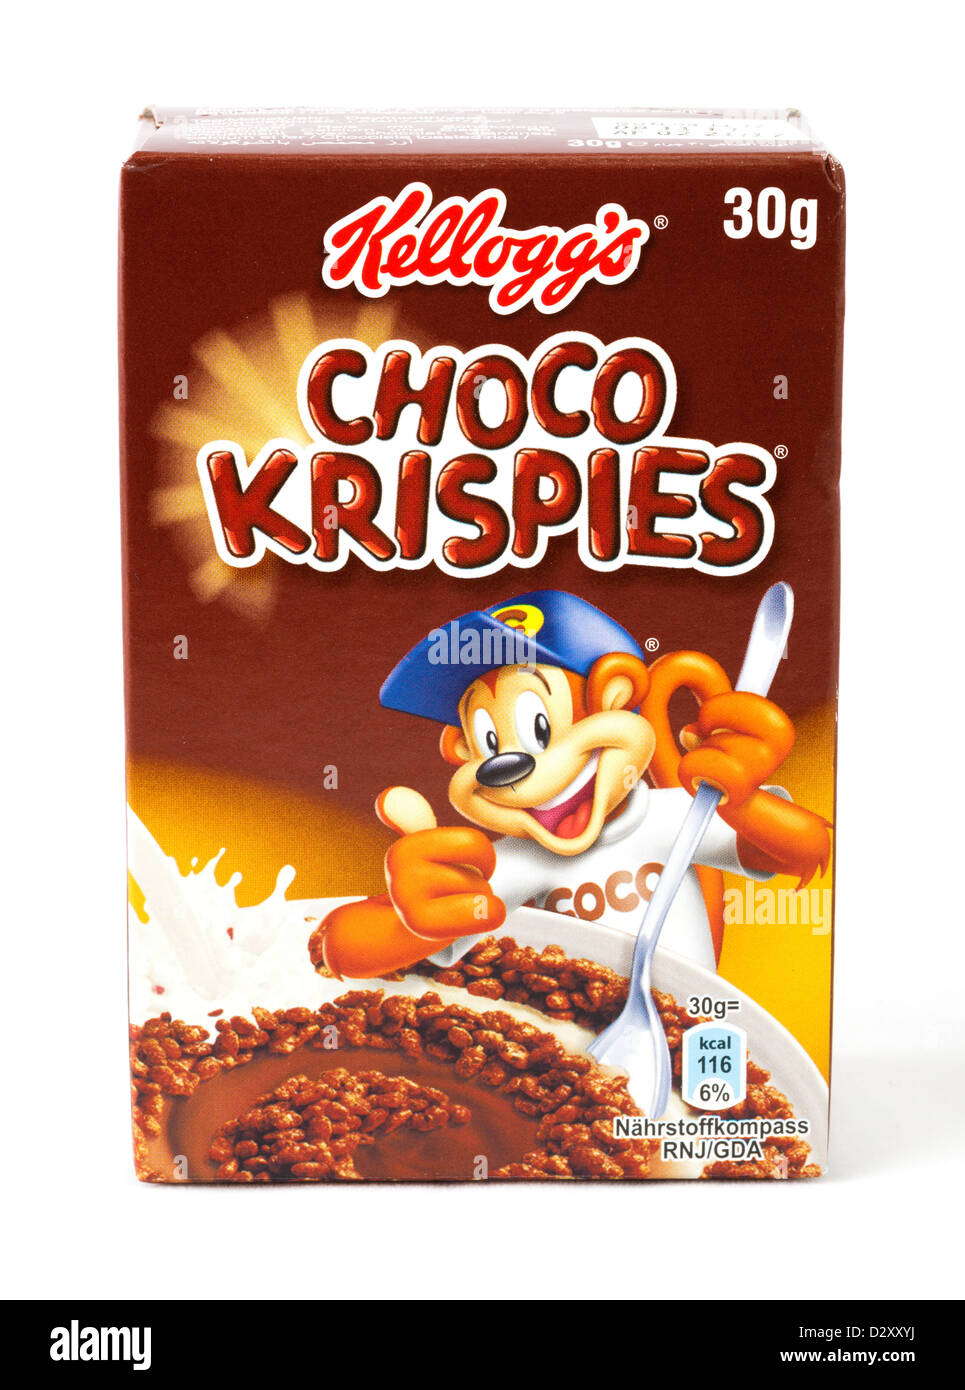 Uncategorized Choco Krispis small pack of kelloggs choco krispies breakfast cereal stock cereal